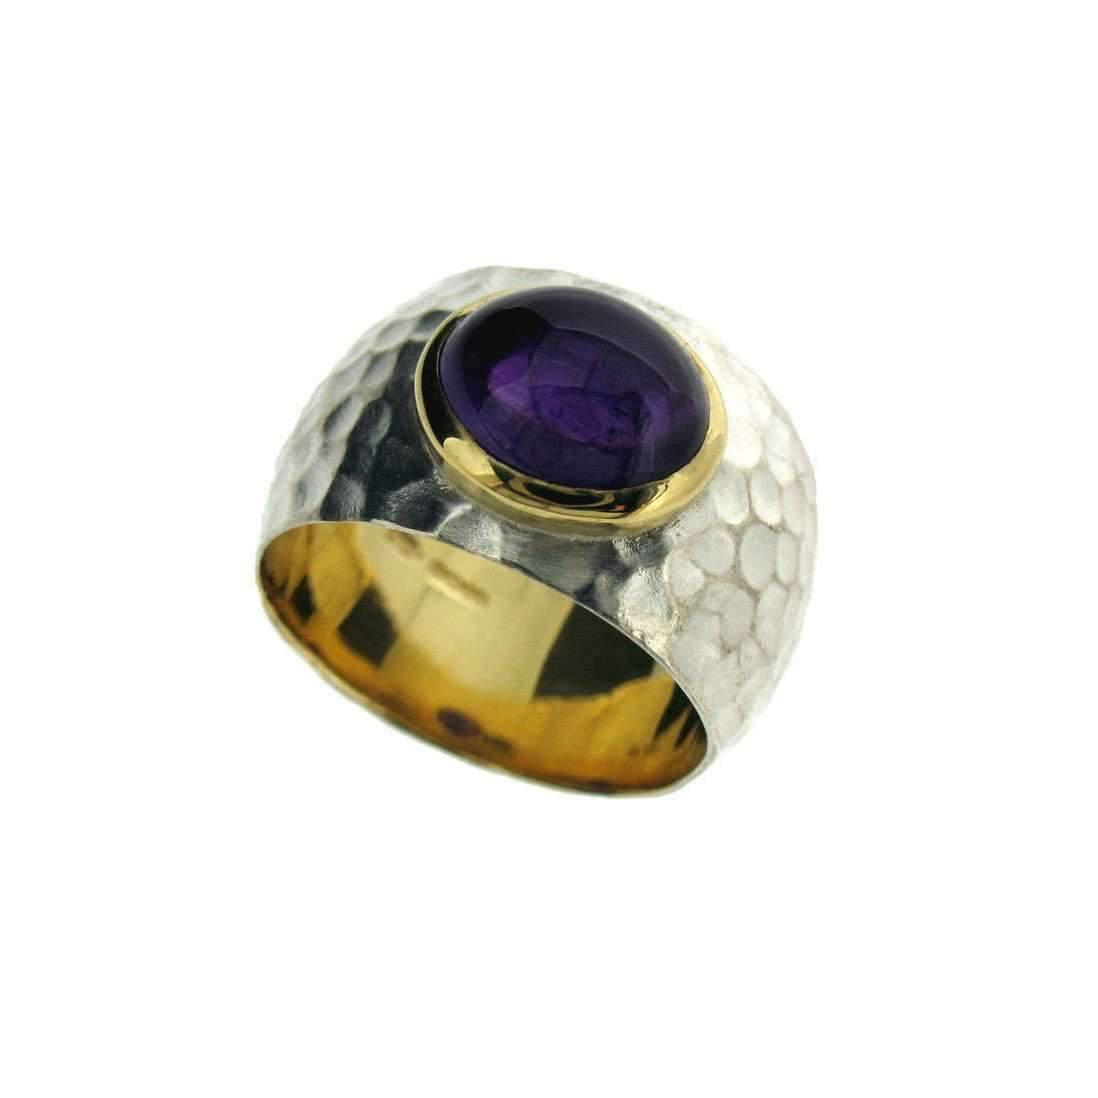 Will Bishop Sterling Silver Kinetic Ring - UK G - US 3 3/8 - EU 45 1/4 tABjD